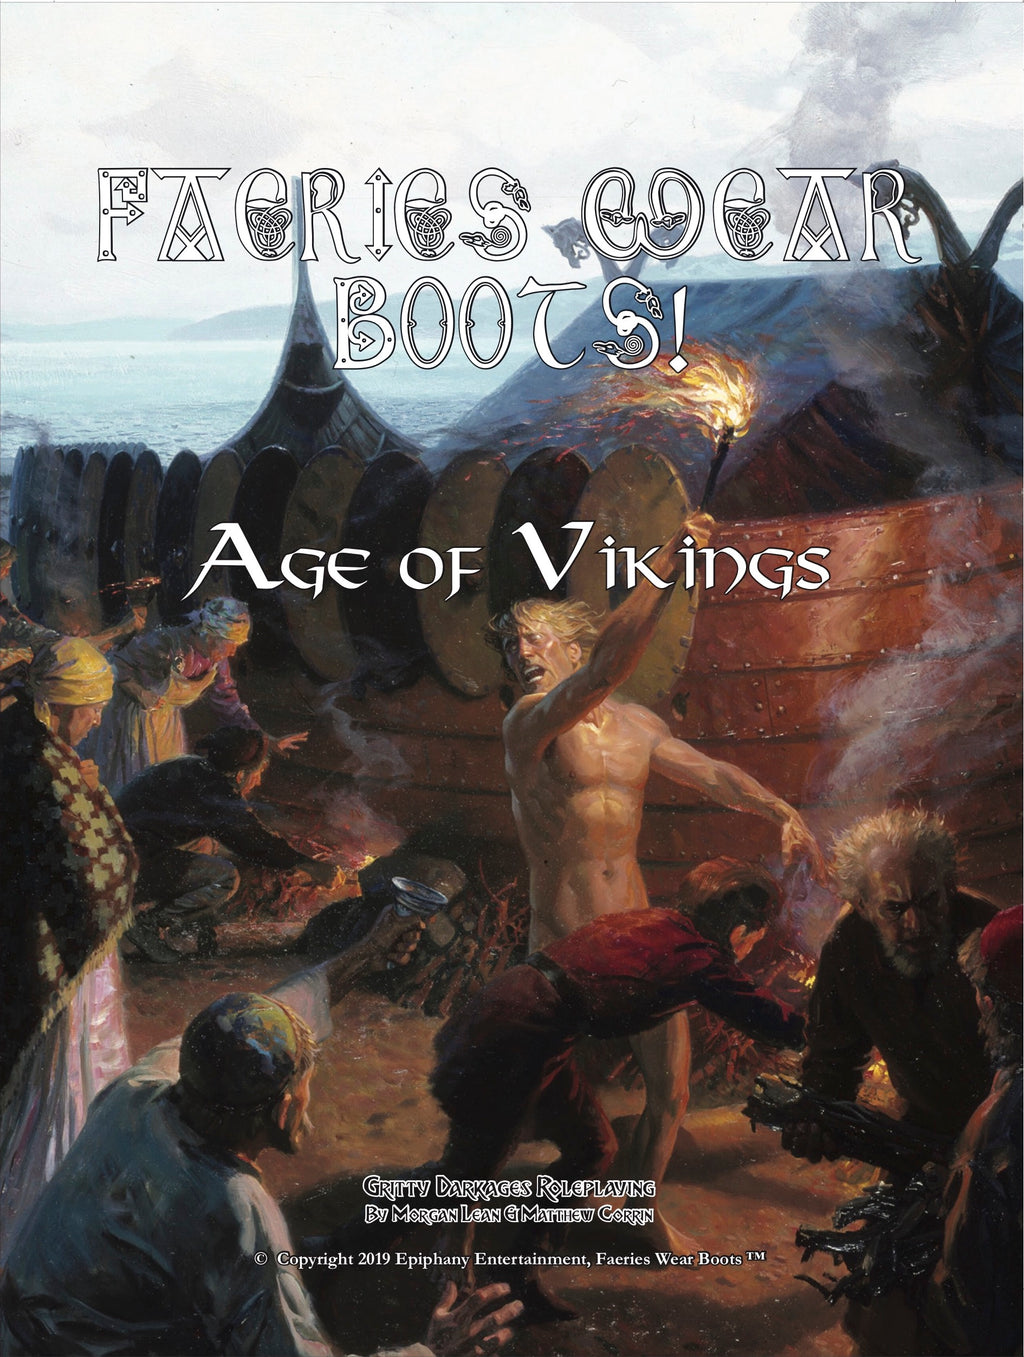 Faeries Wear Boots: Age of Vikings Hardcover Book